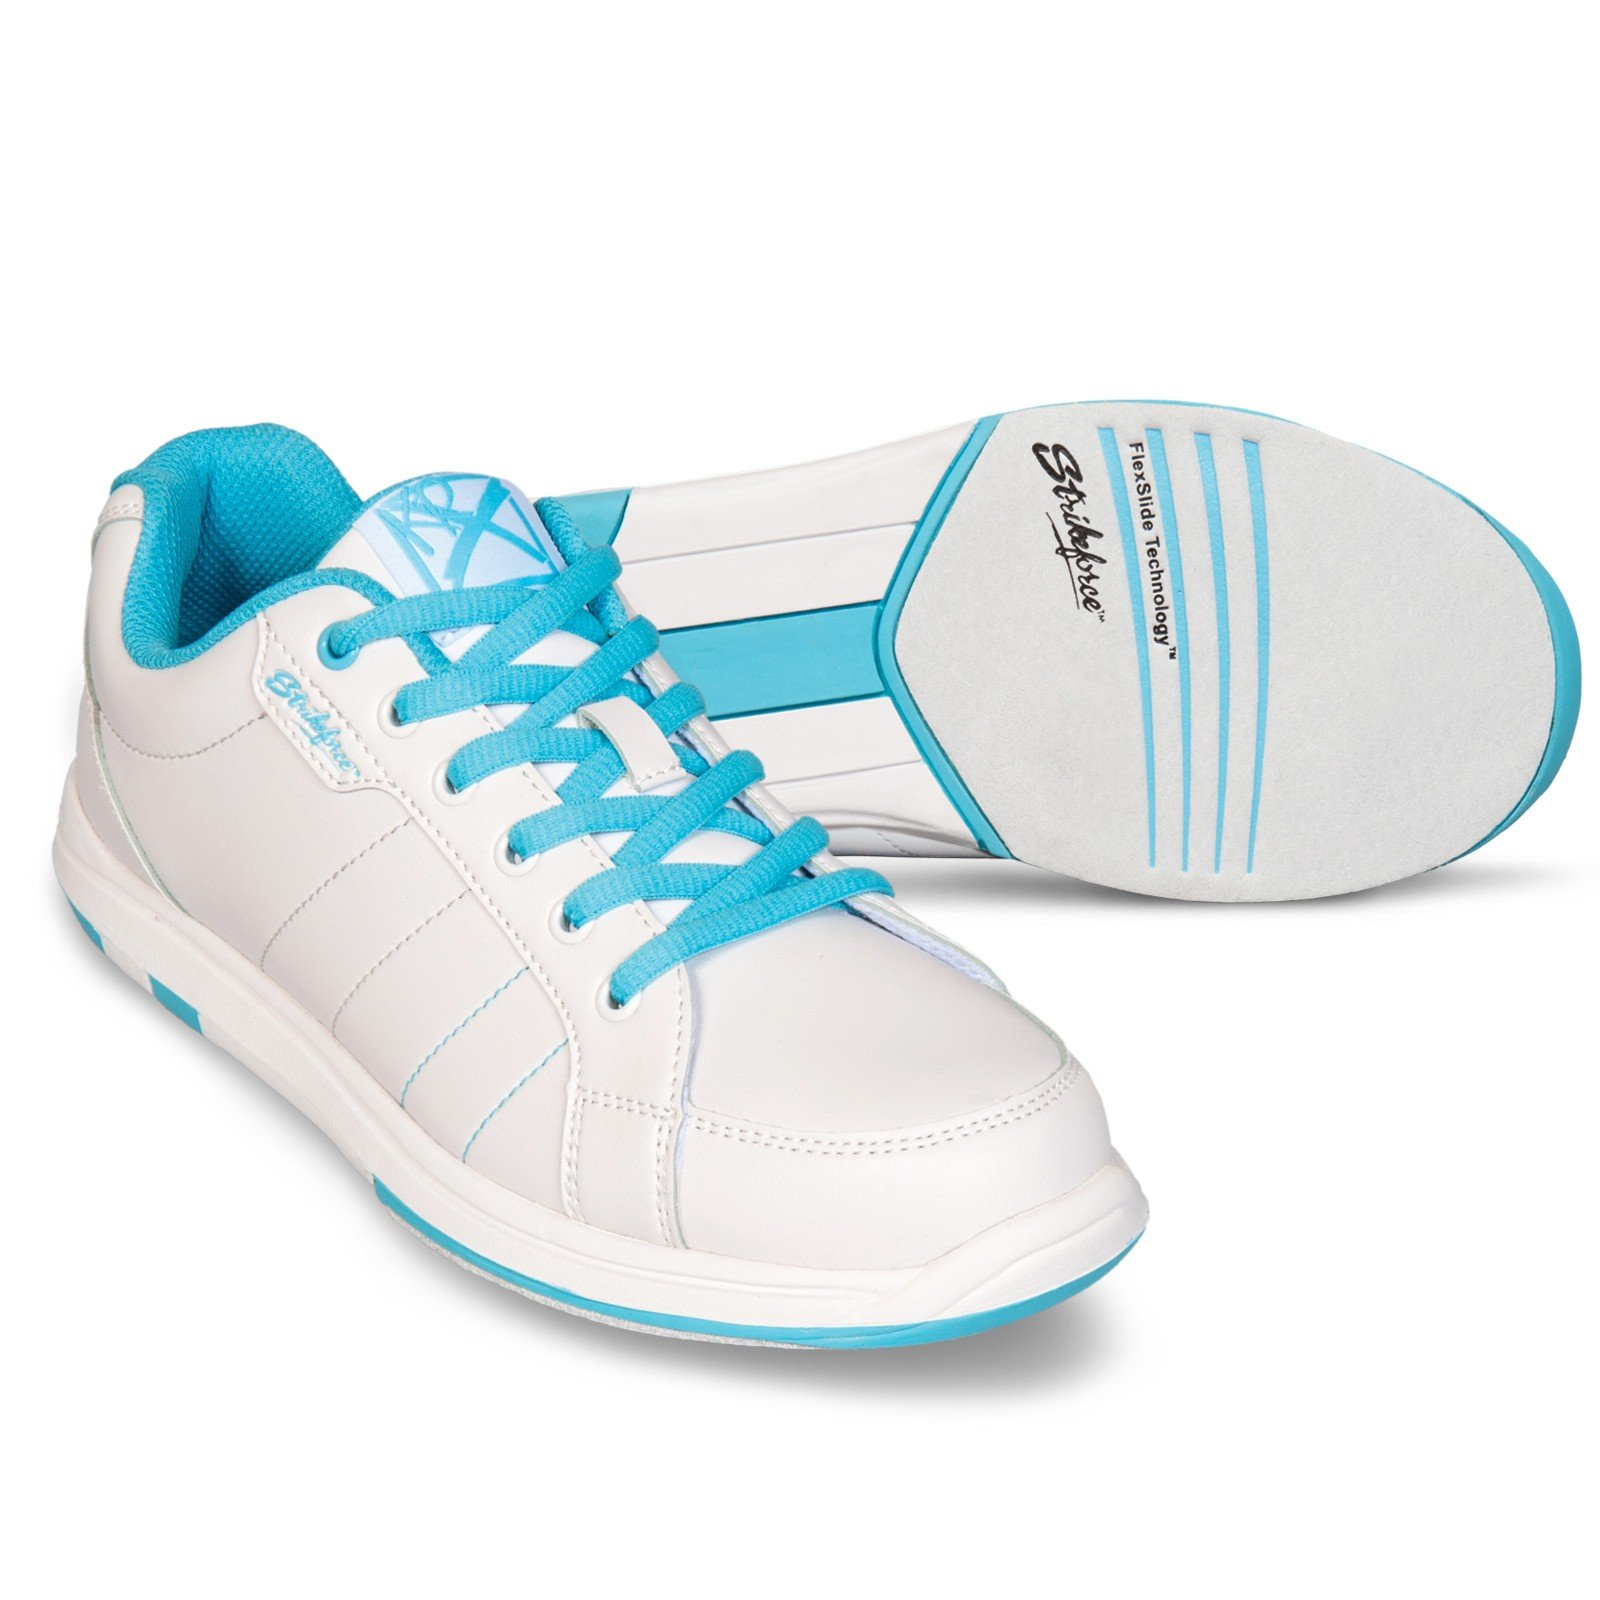 Brunswick Women's Satin Wide Bowling Shoes, White/Aqua, 8.0